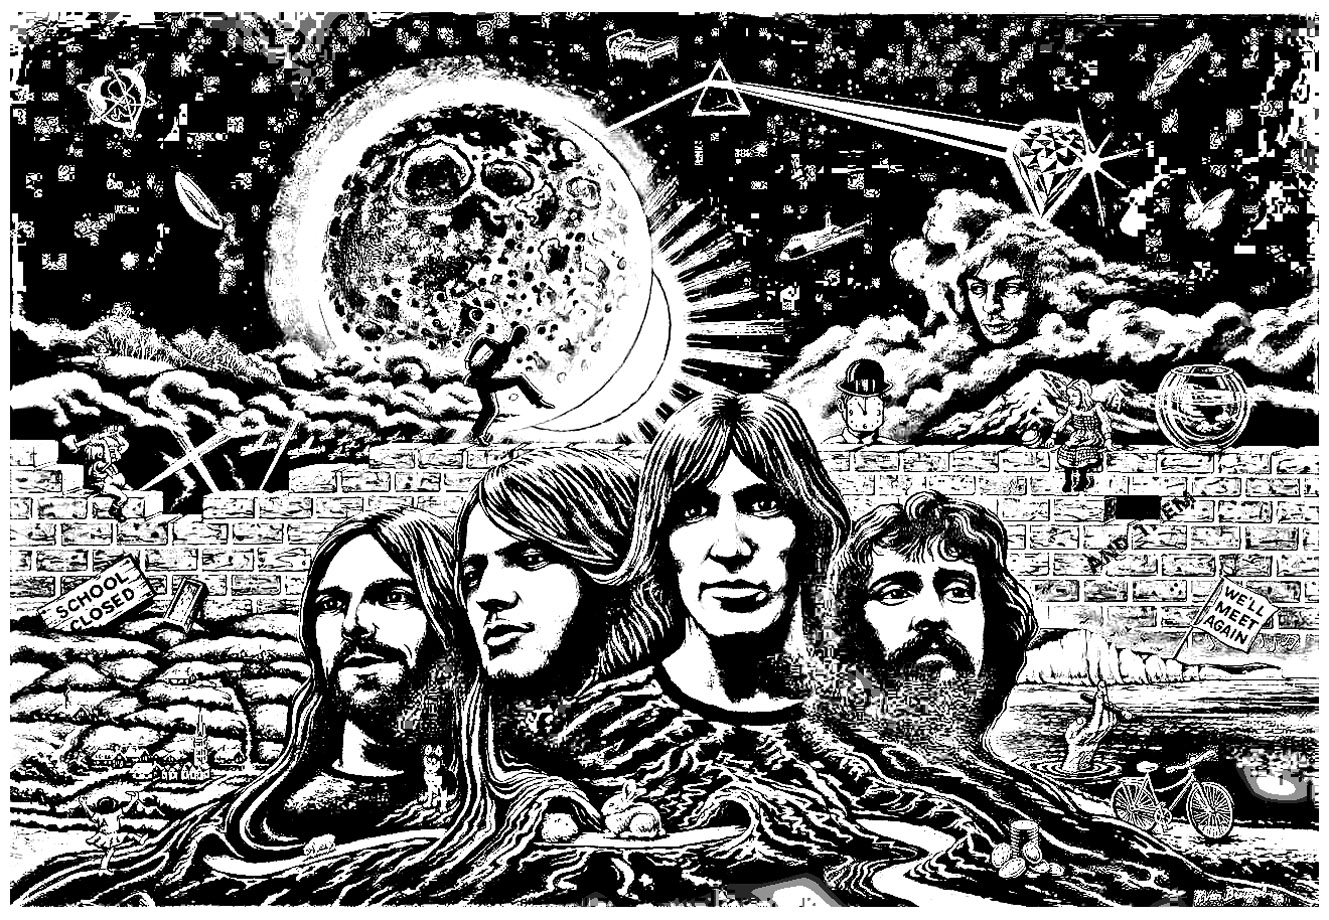 native american coloring pages - image=psychedelic coloring pink floyd psychedelism 1